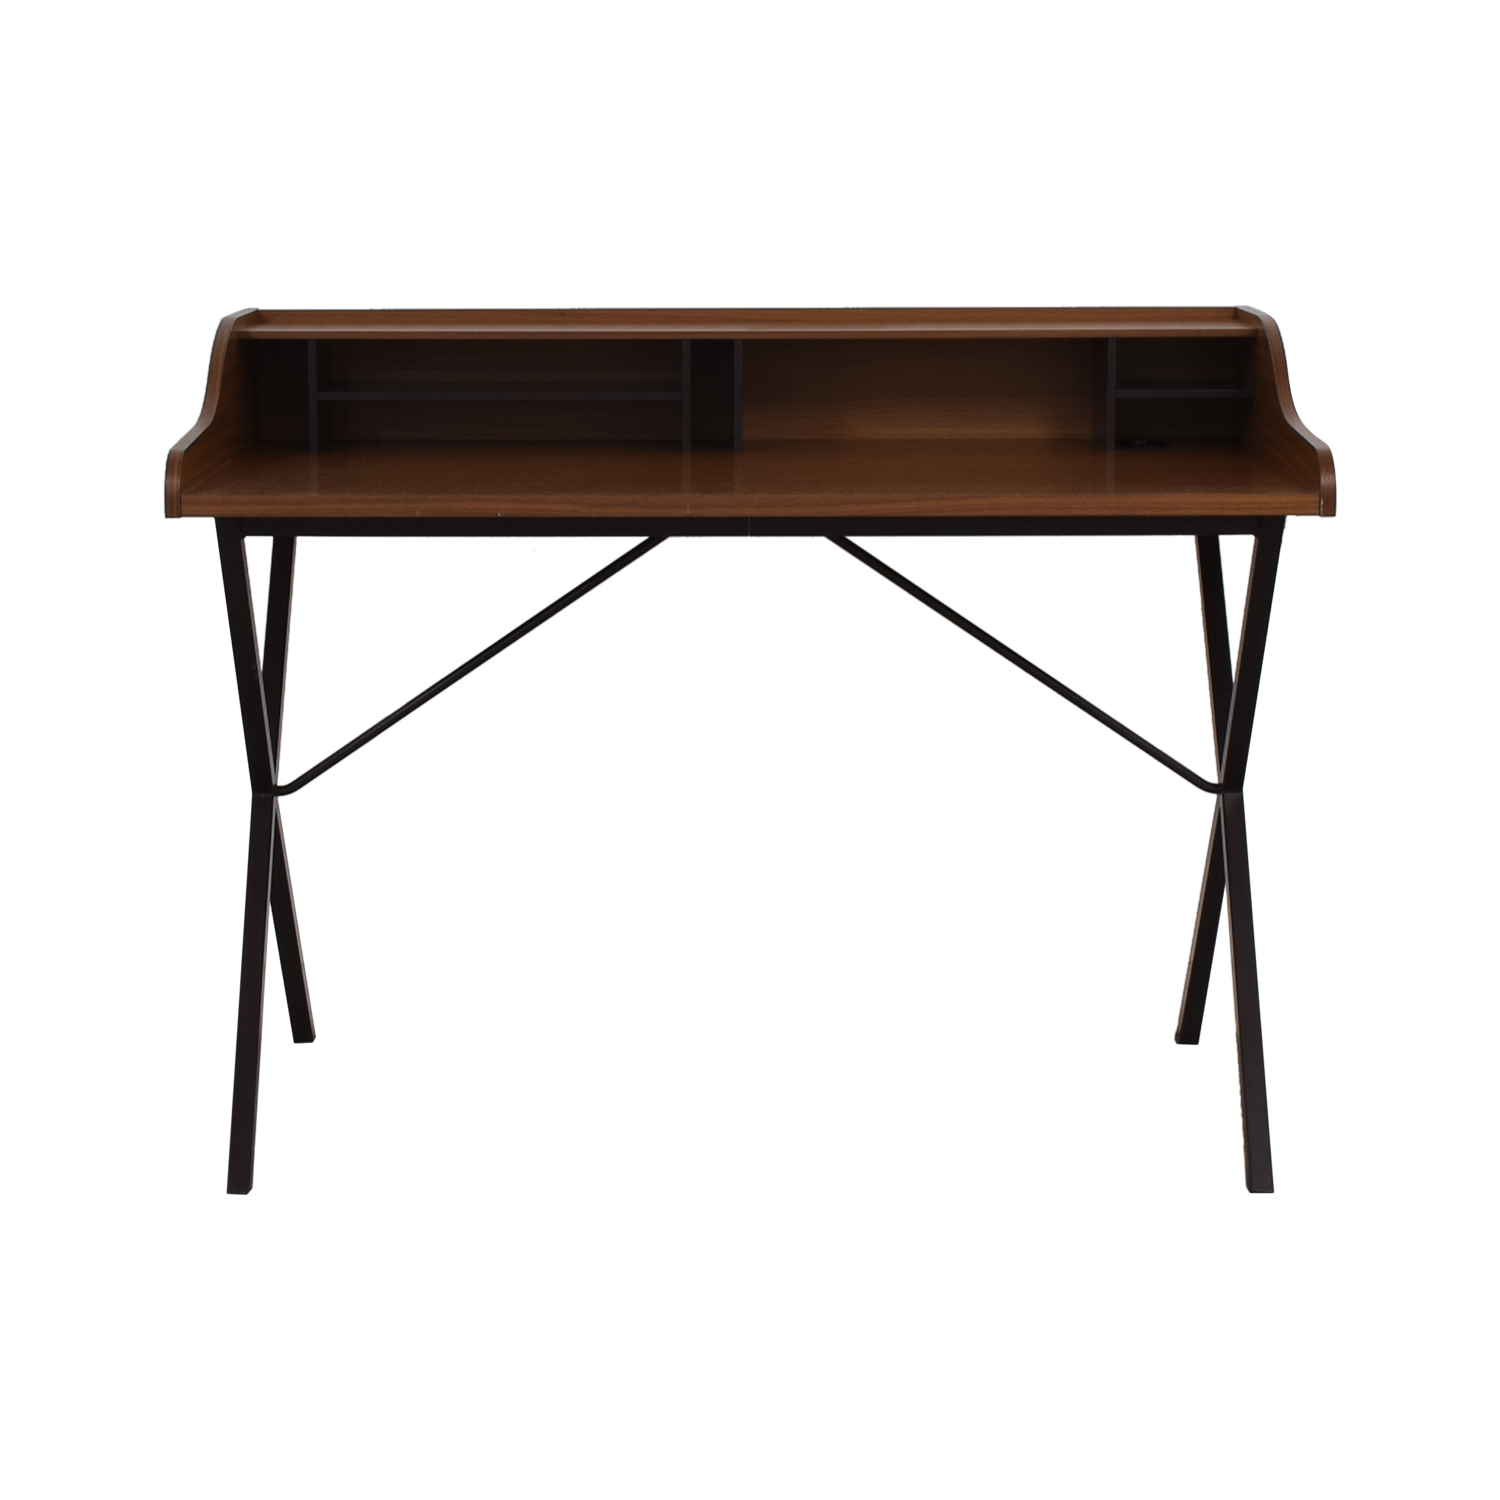 shop Ligne Roset Pierre Paulin Ursuline Writing Desk Ligne Roset